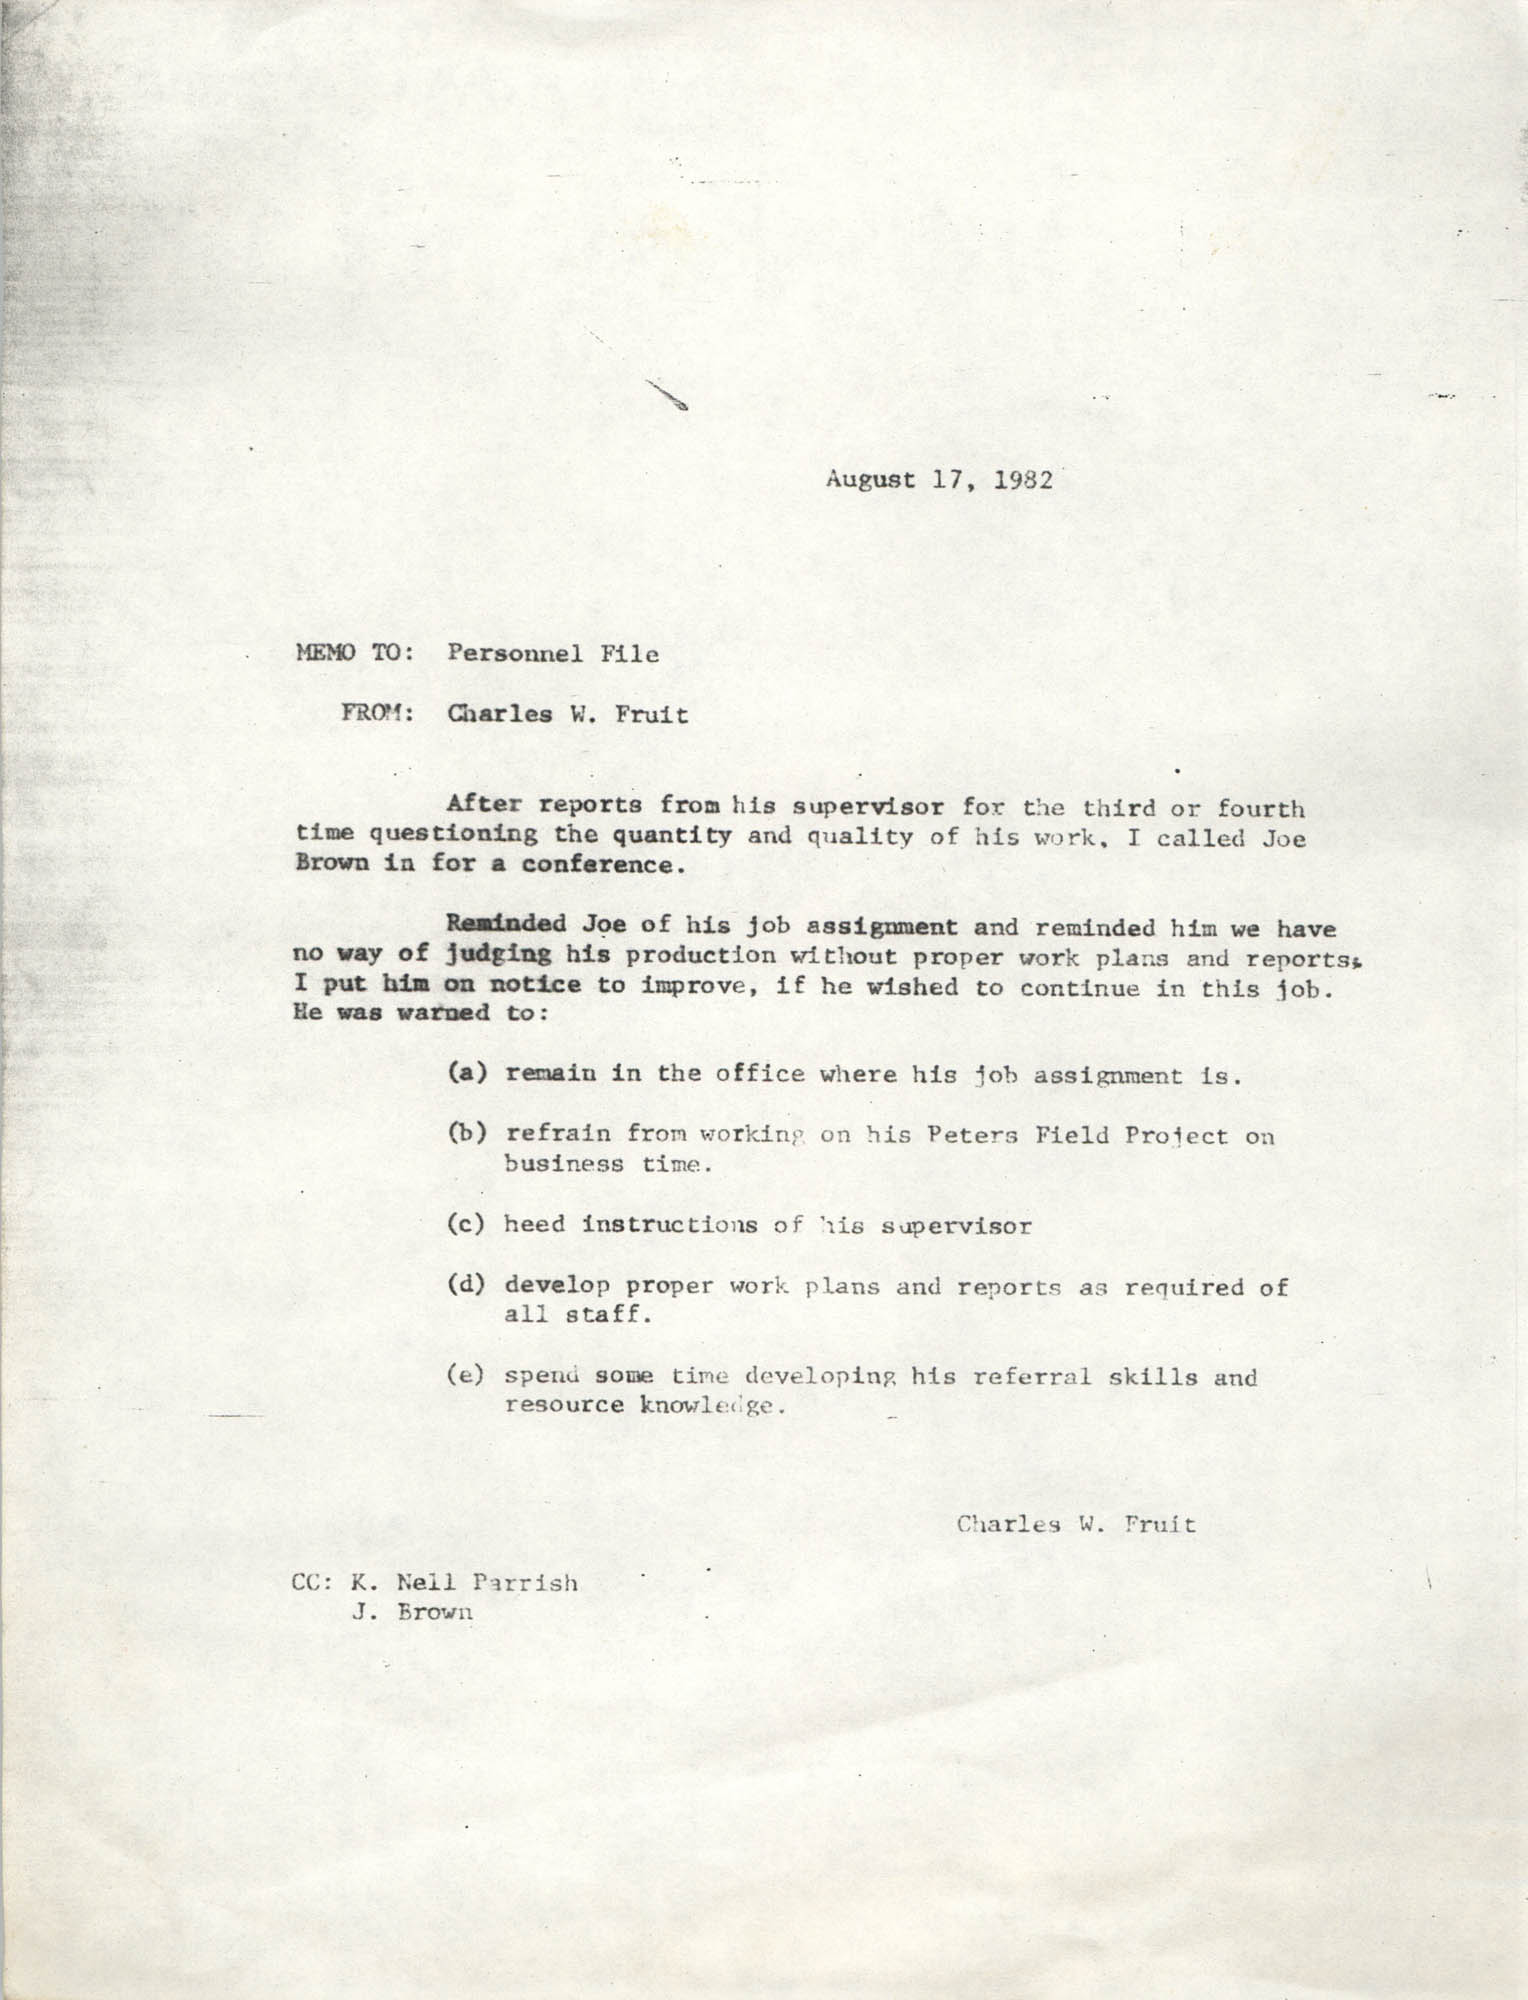 Letter from Charles W. Fruit, August 17, 1982